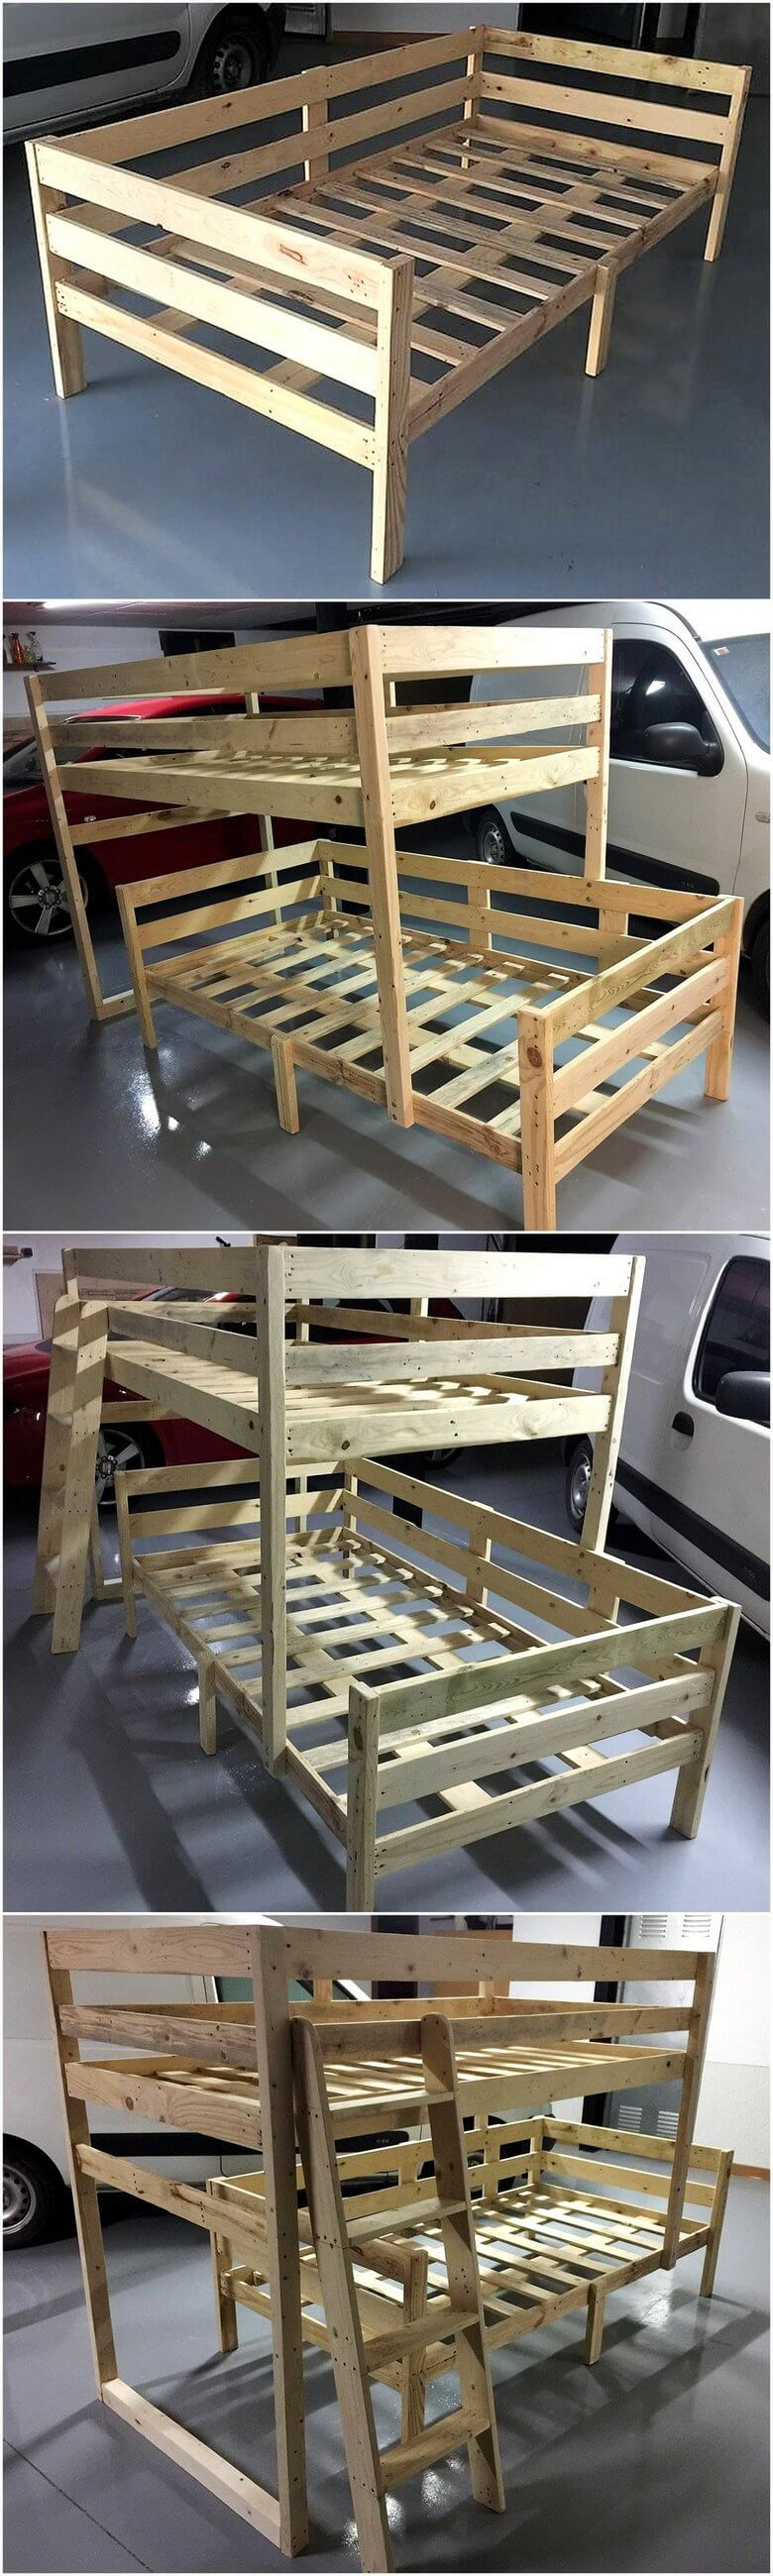 diy pallet bunk bed plan